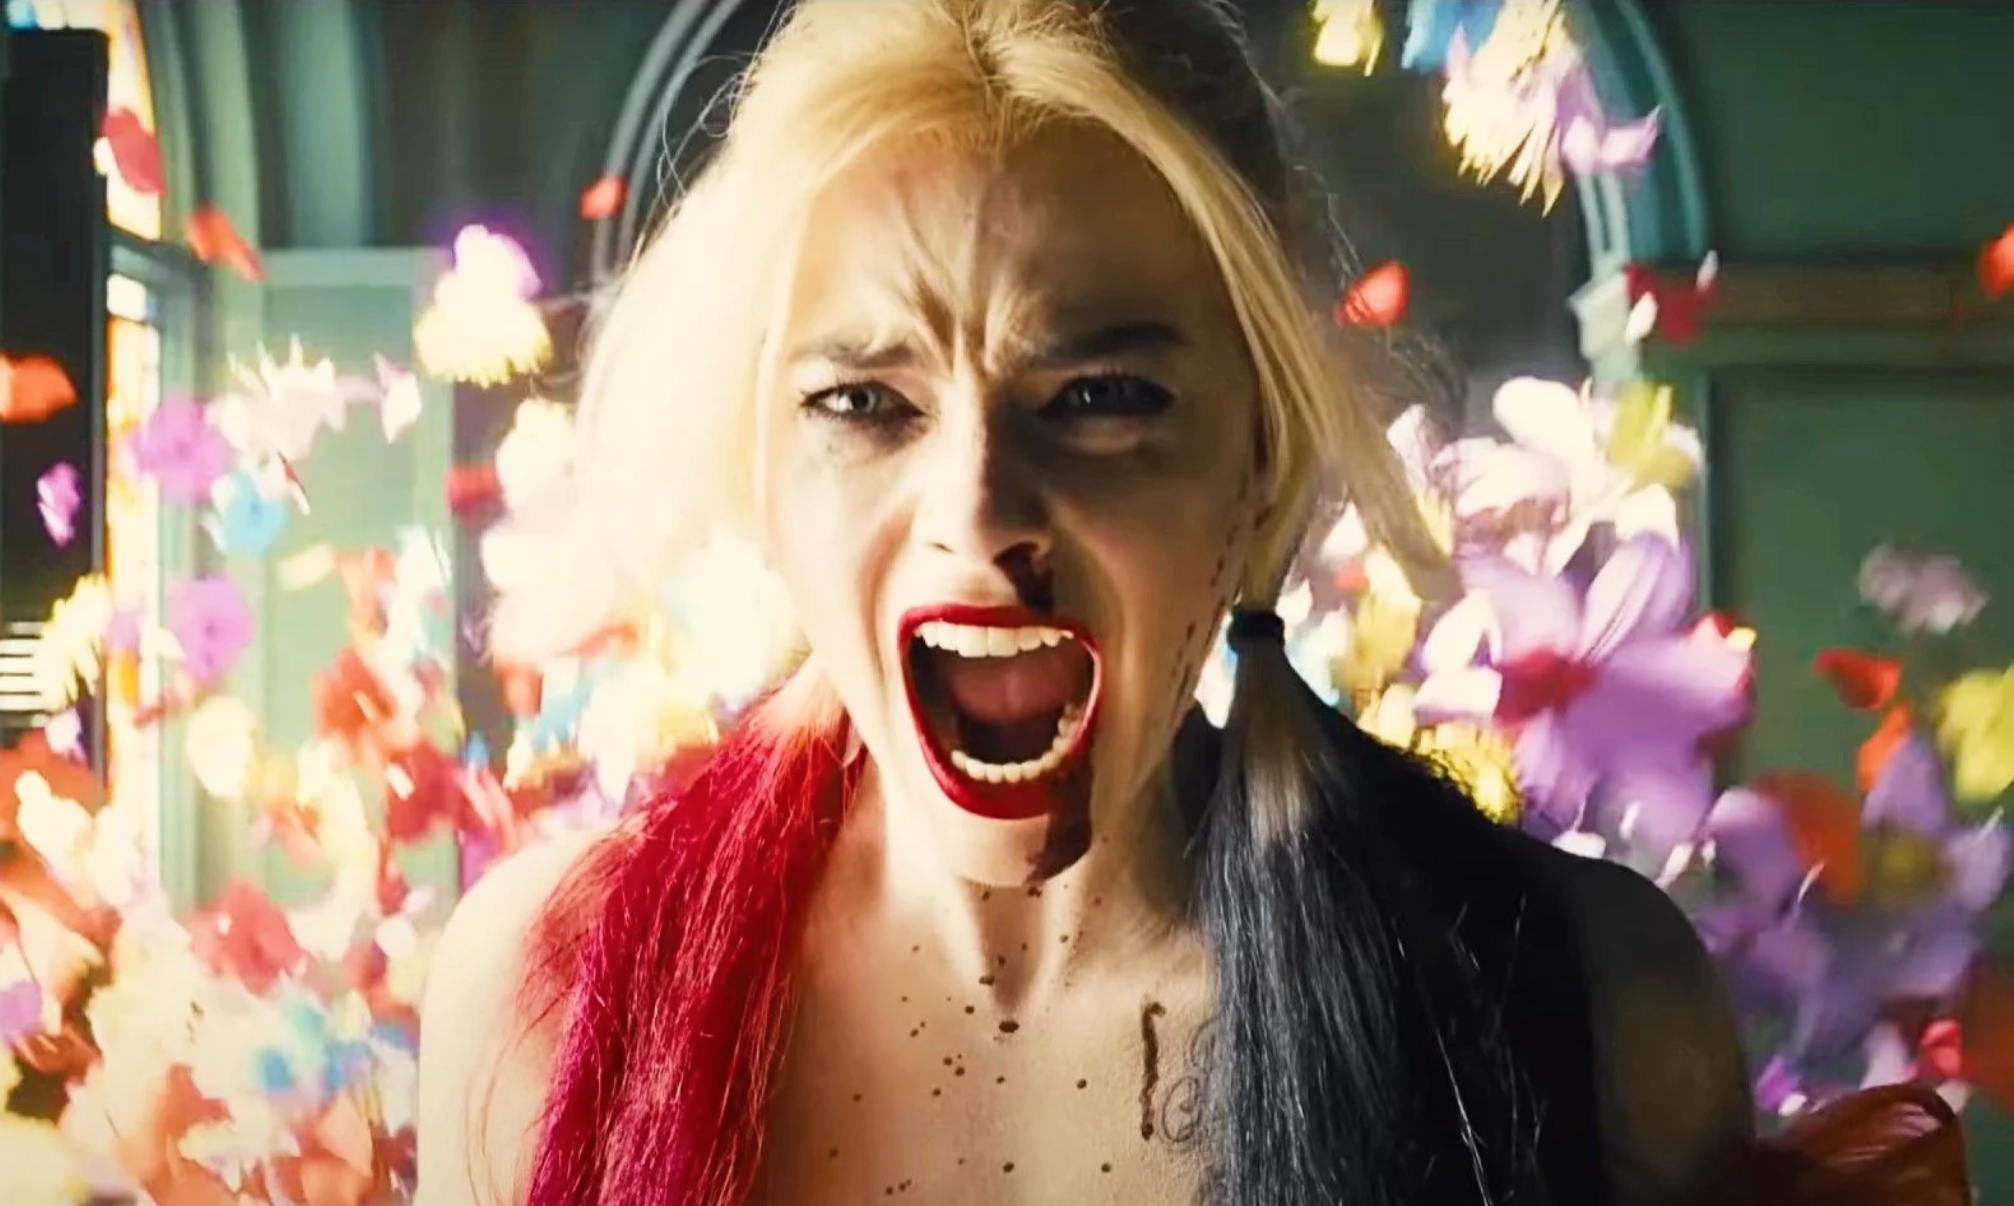 'The Suicide Squad' Really Tried to Sell Me a Dollar Store Version of Harley Quinn